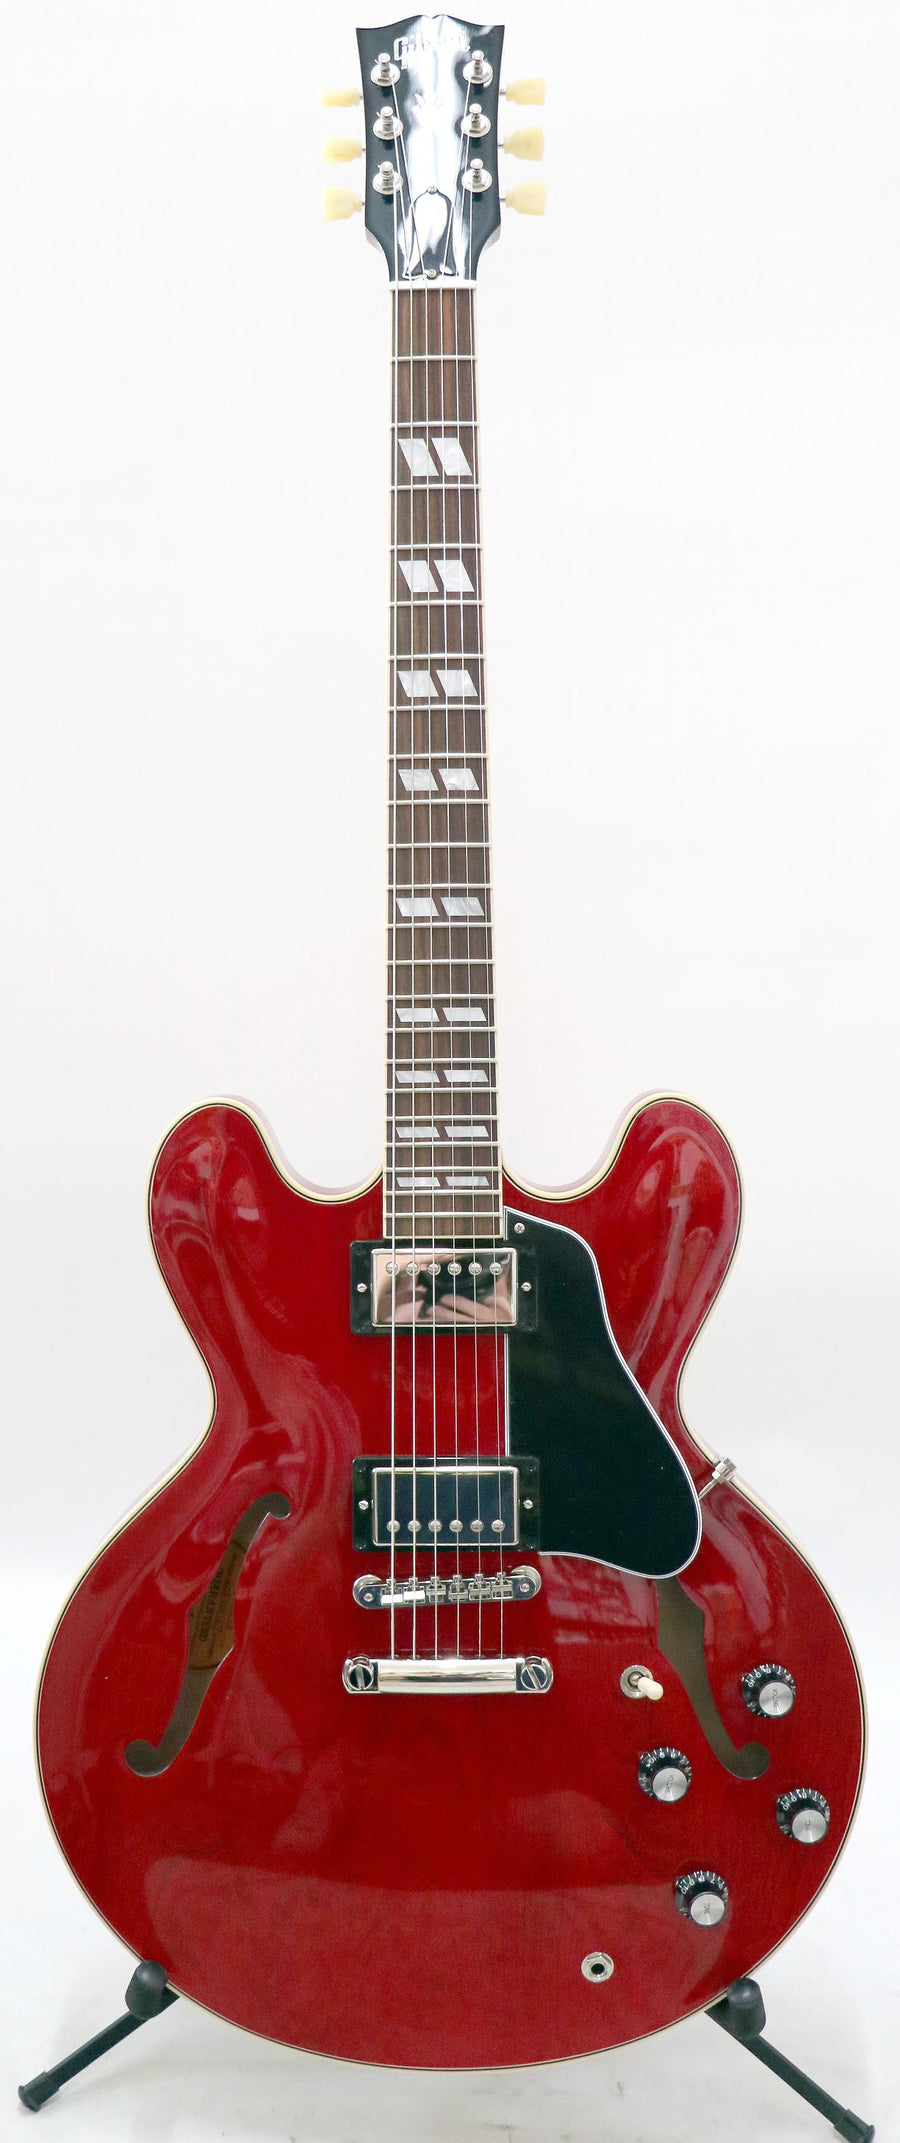 Gibson ES-345 Semi-Hollow Sixties Cherry - 2020 latest model!!